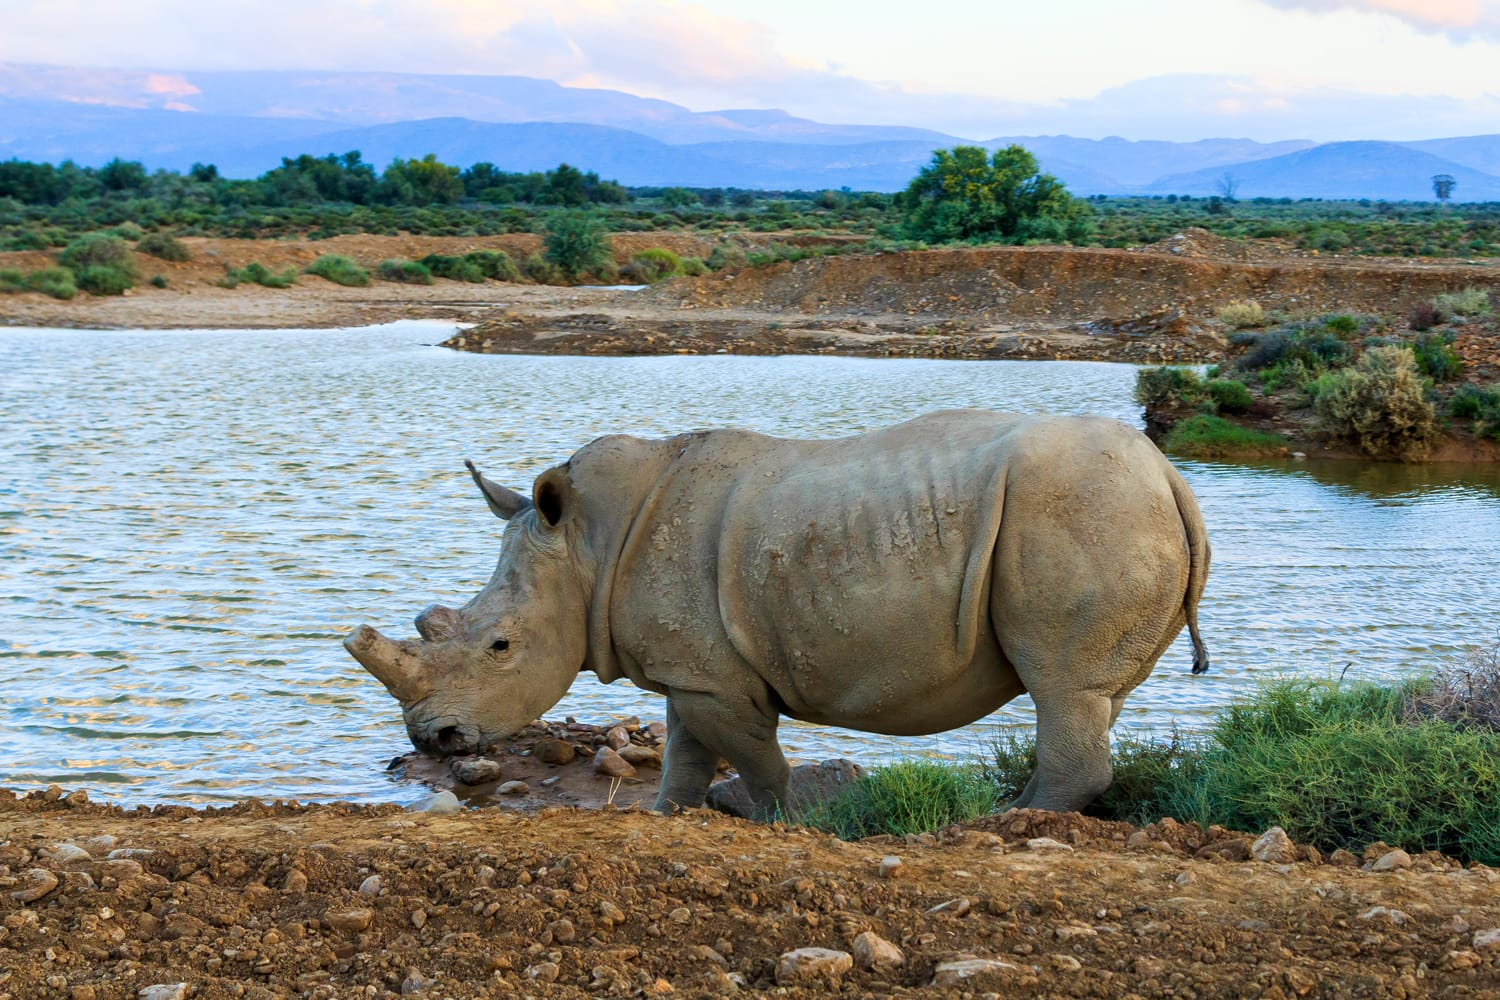 Rhino at Inverdoorn in South Africa